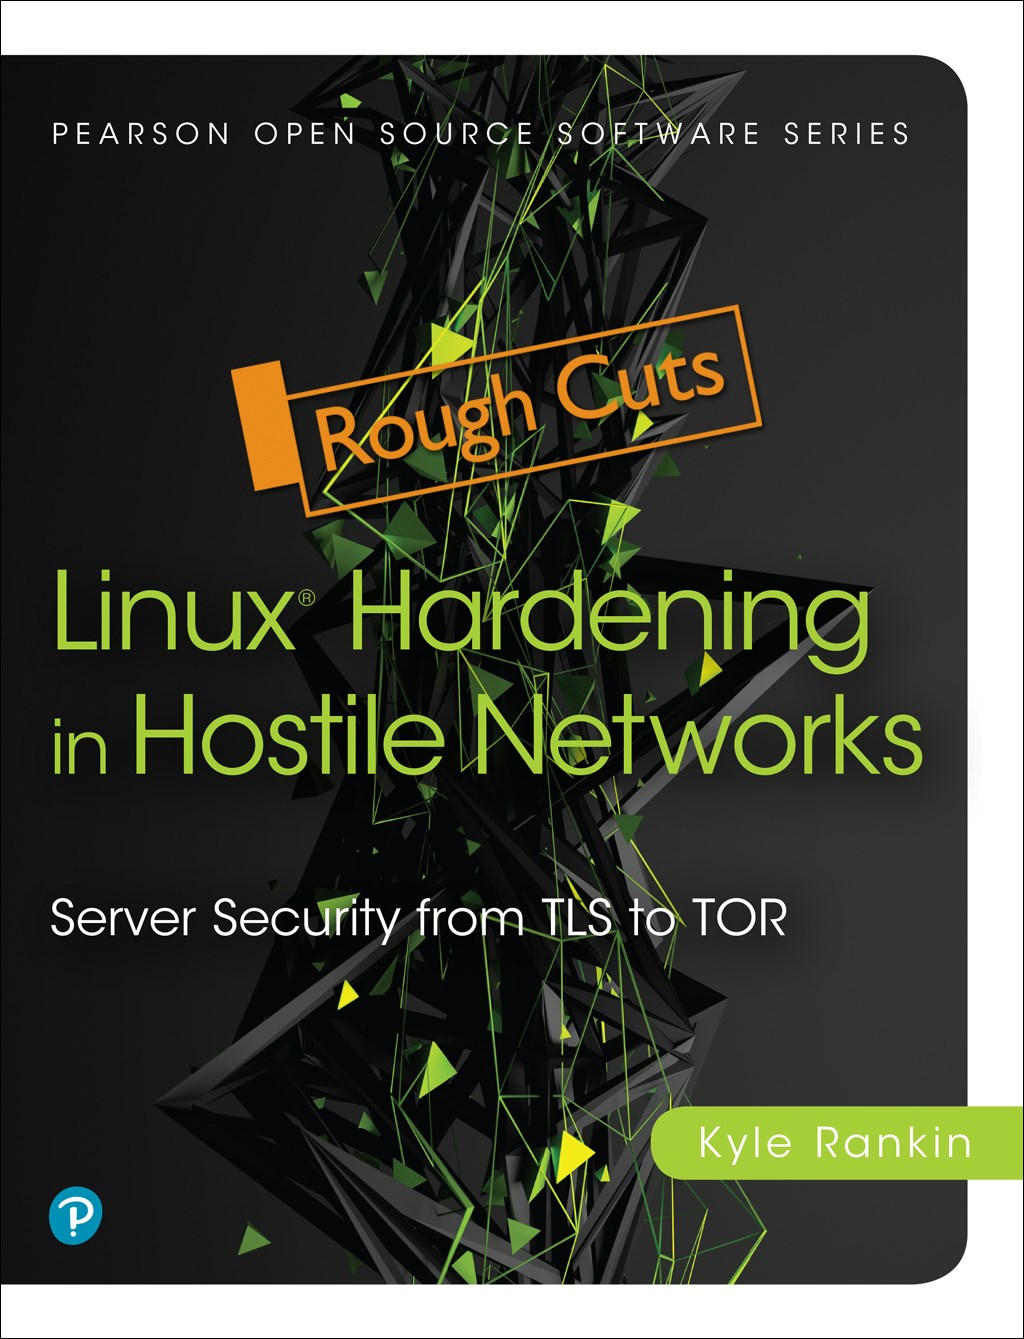 Linux Hardening in Hostile Networks: Server Security from TLS to Tor, Rough Cuts